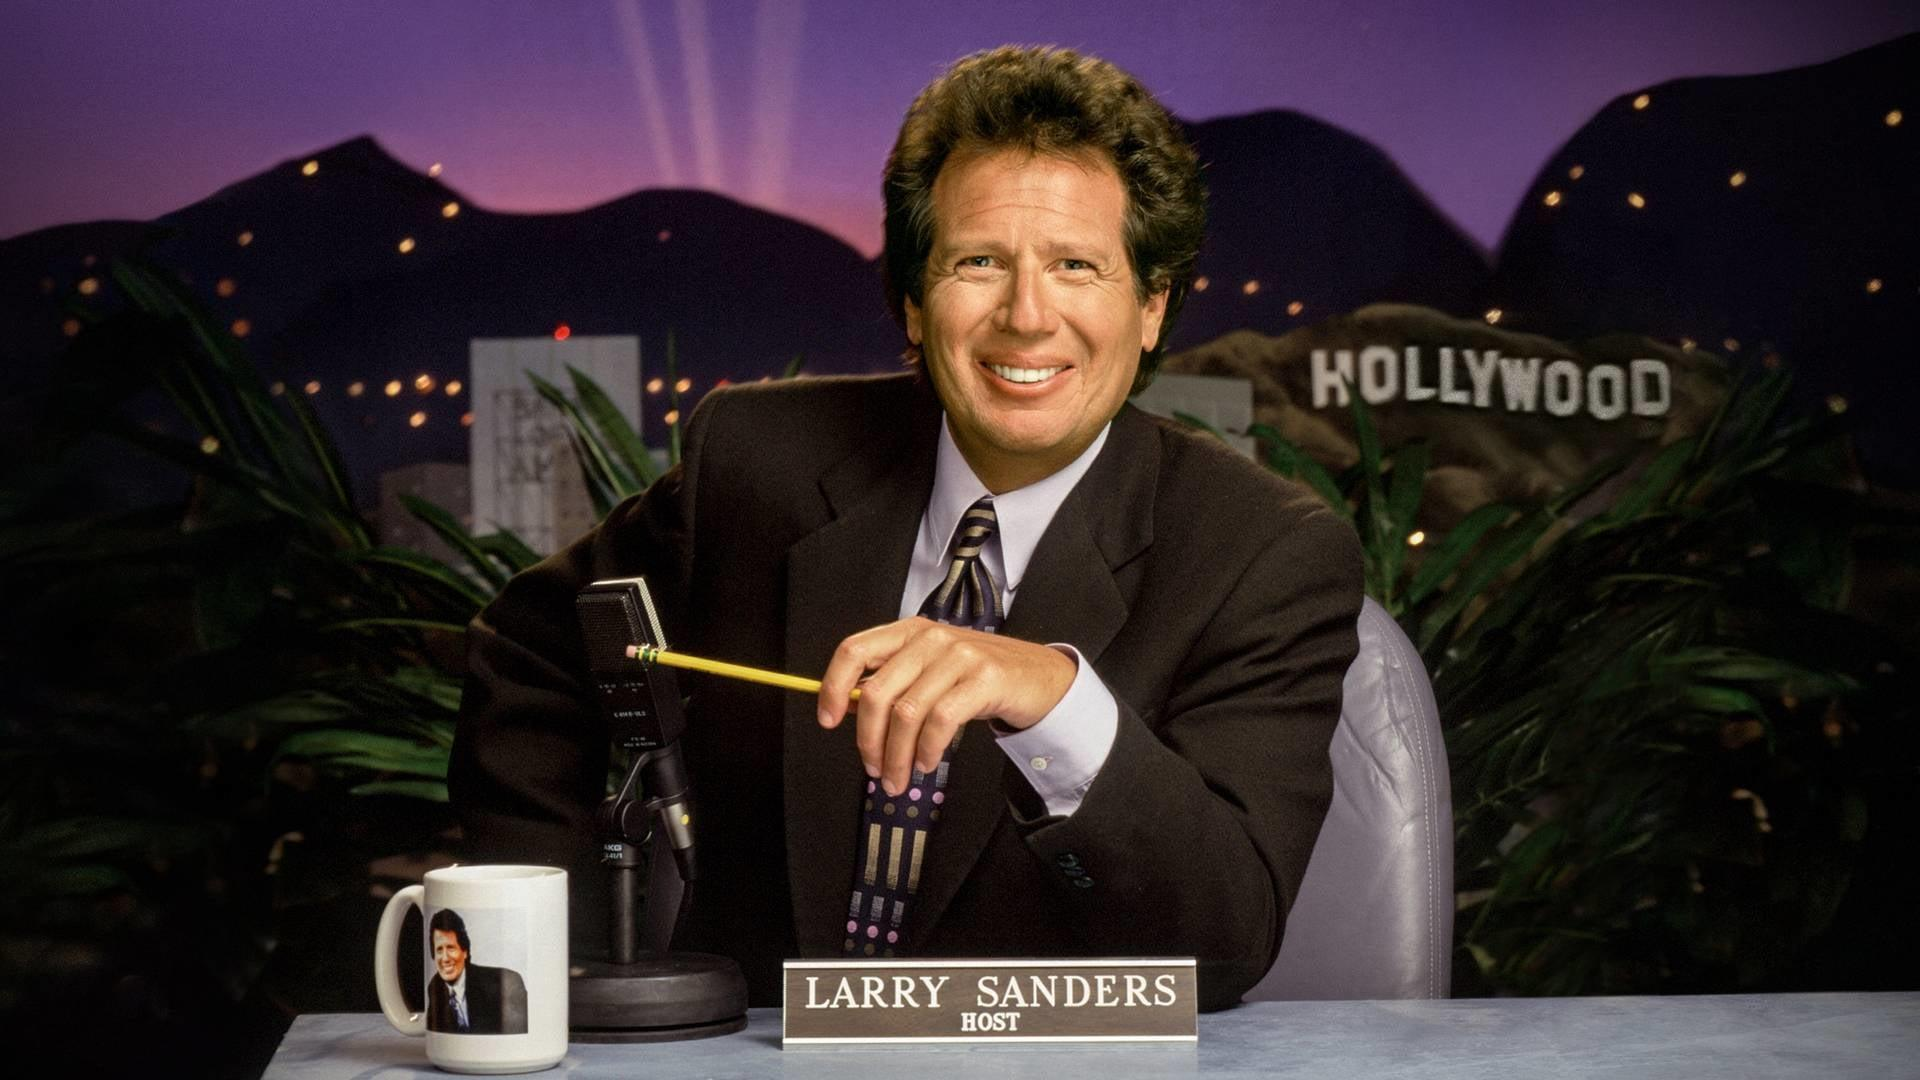 Backdrop Image for The Larry Sanders Show